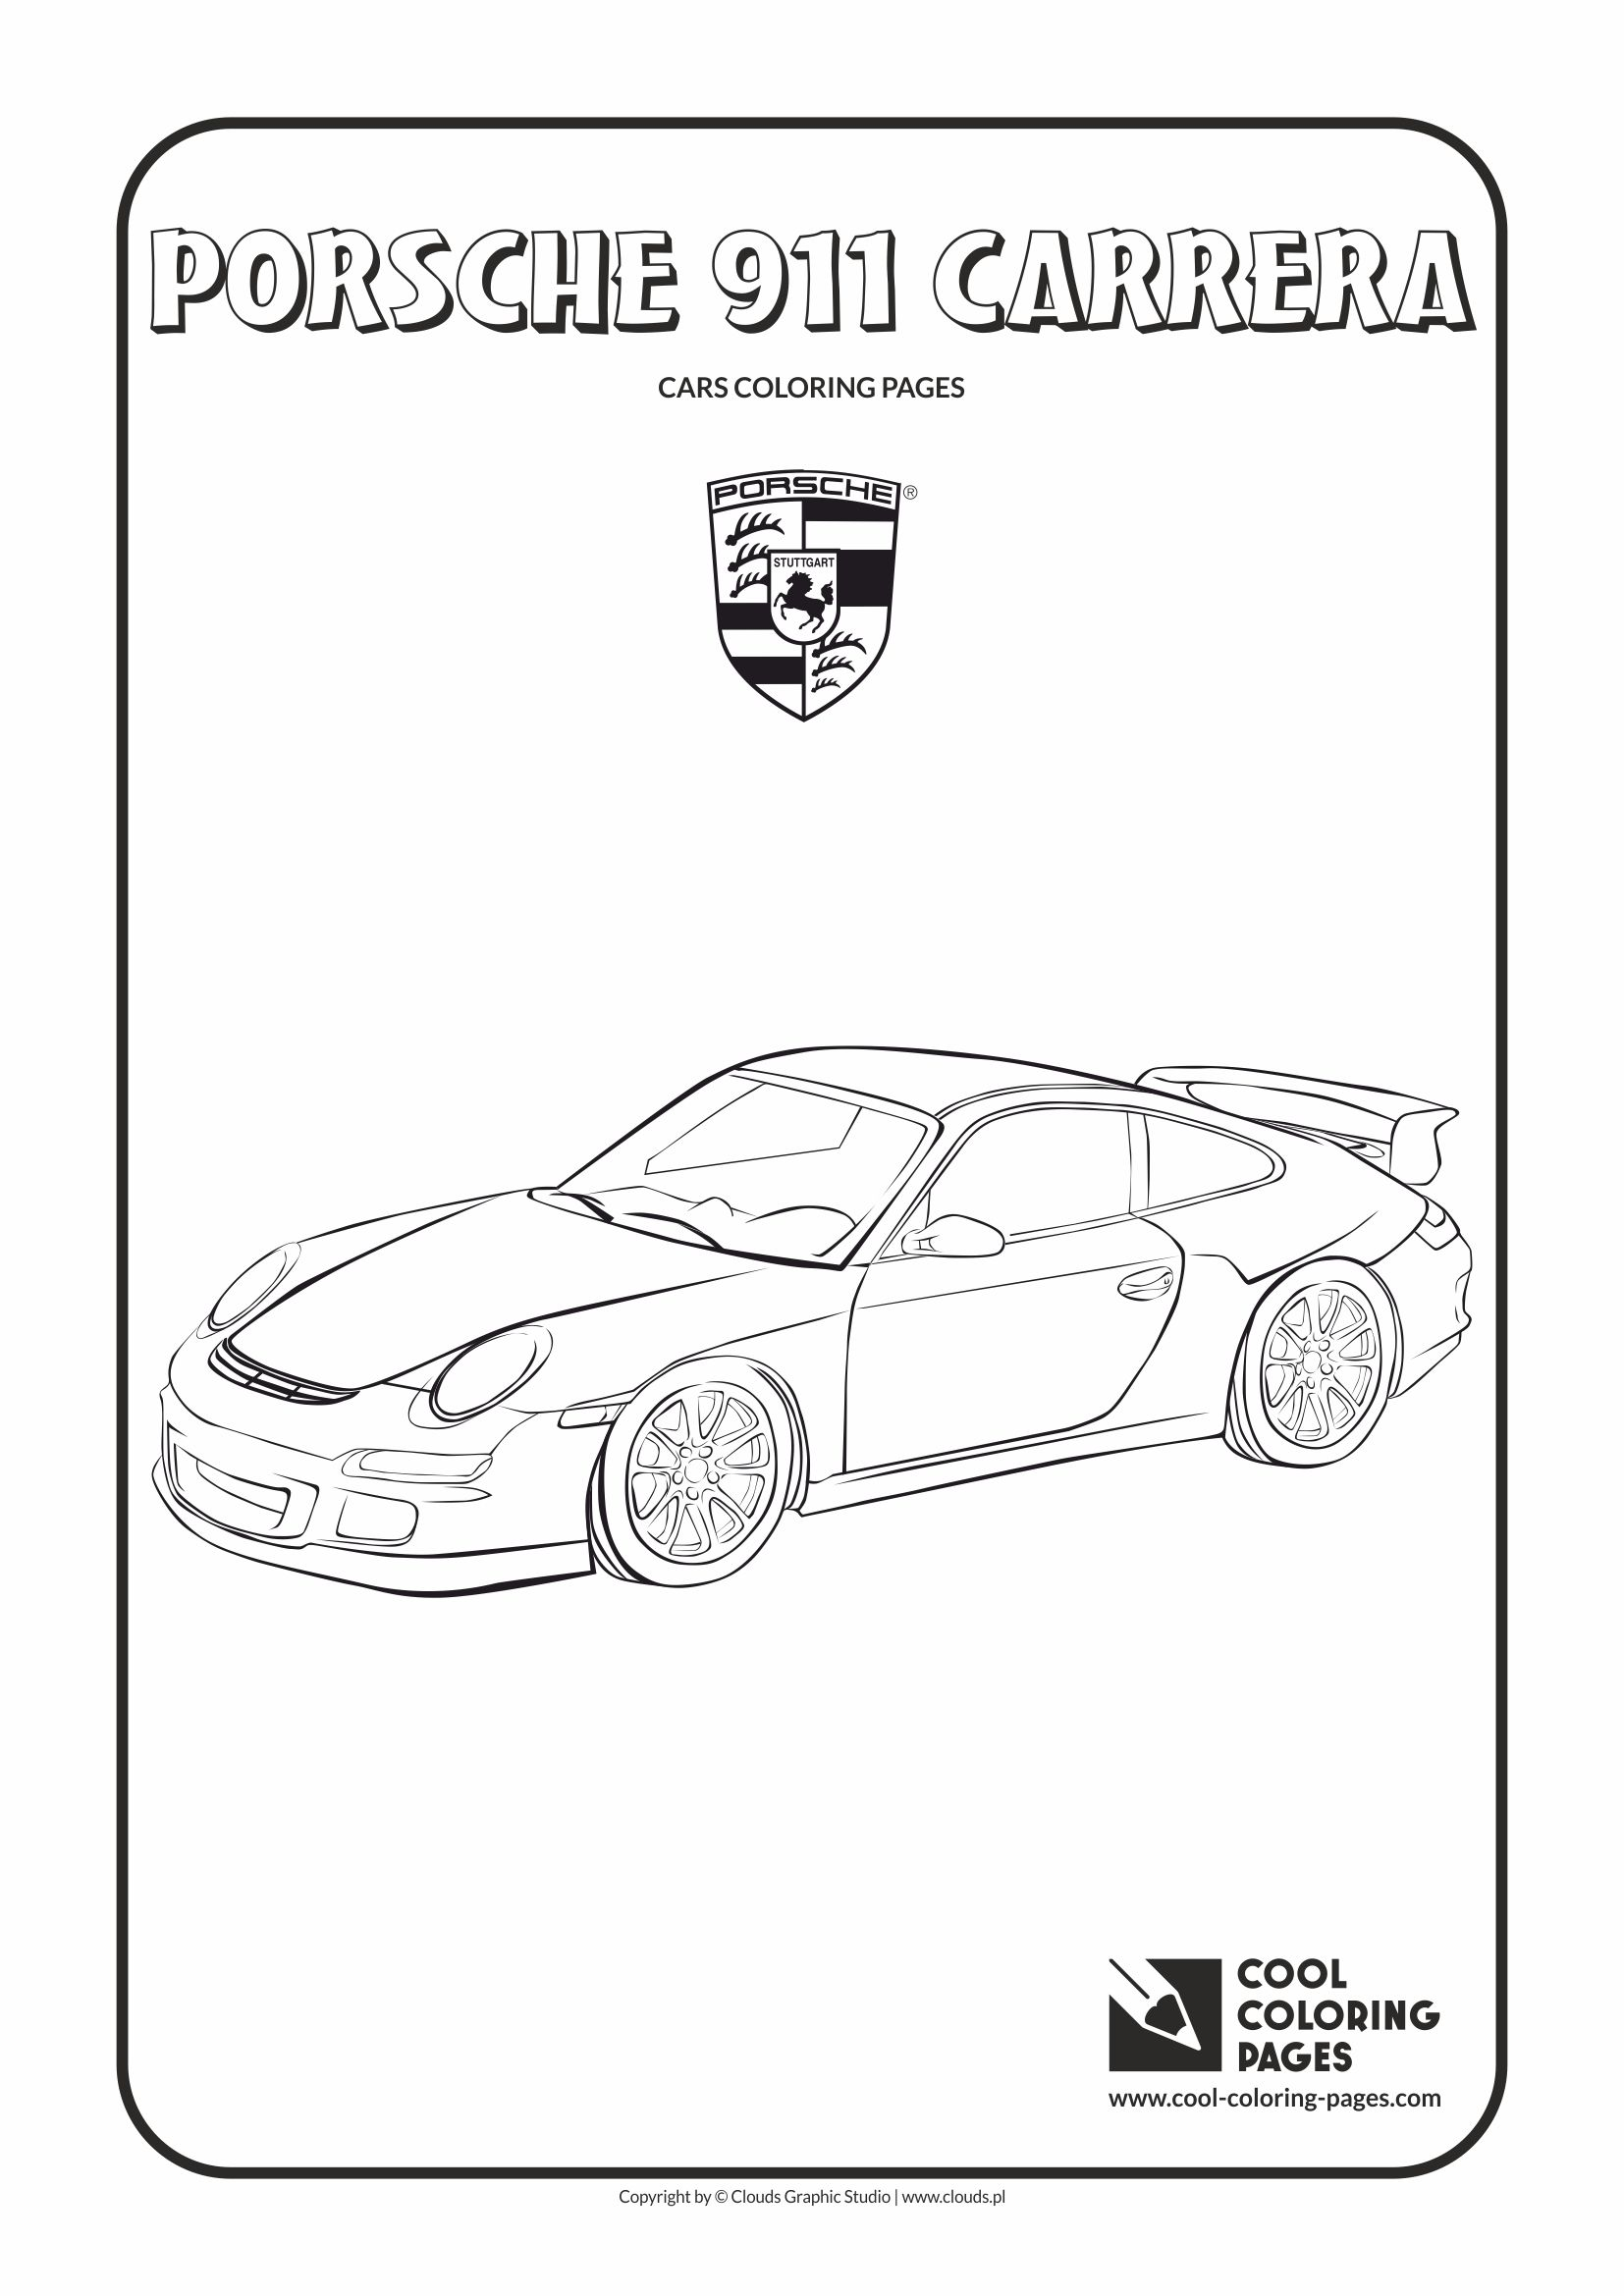 Cool Coloring Pages Porsche 911 Carrera Coloring Page